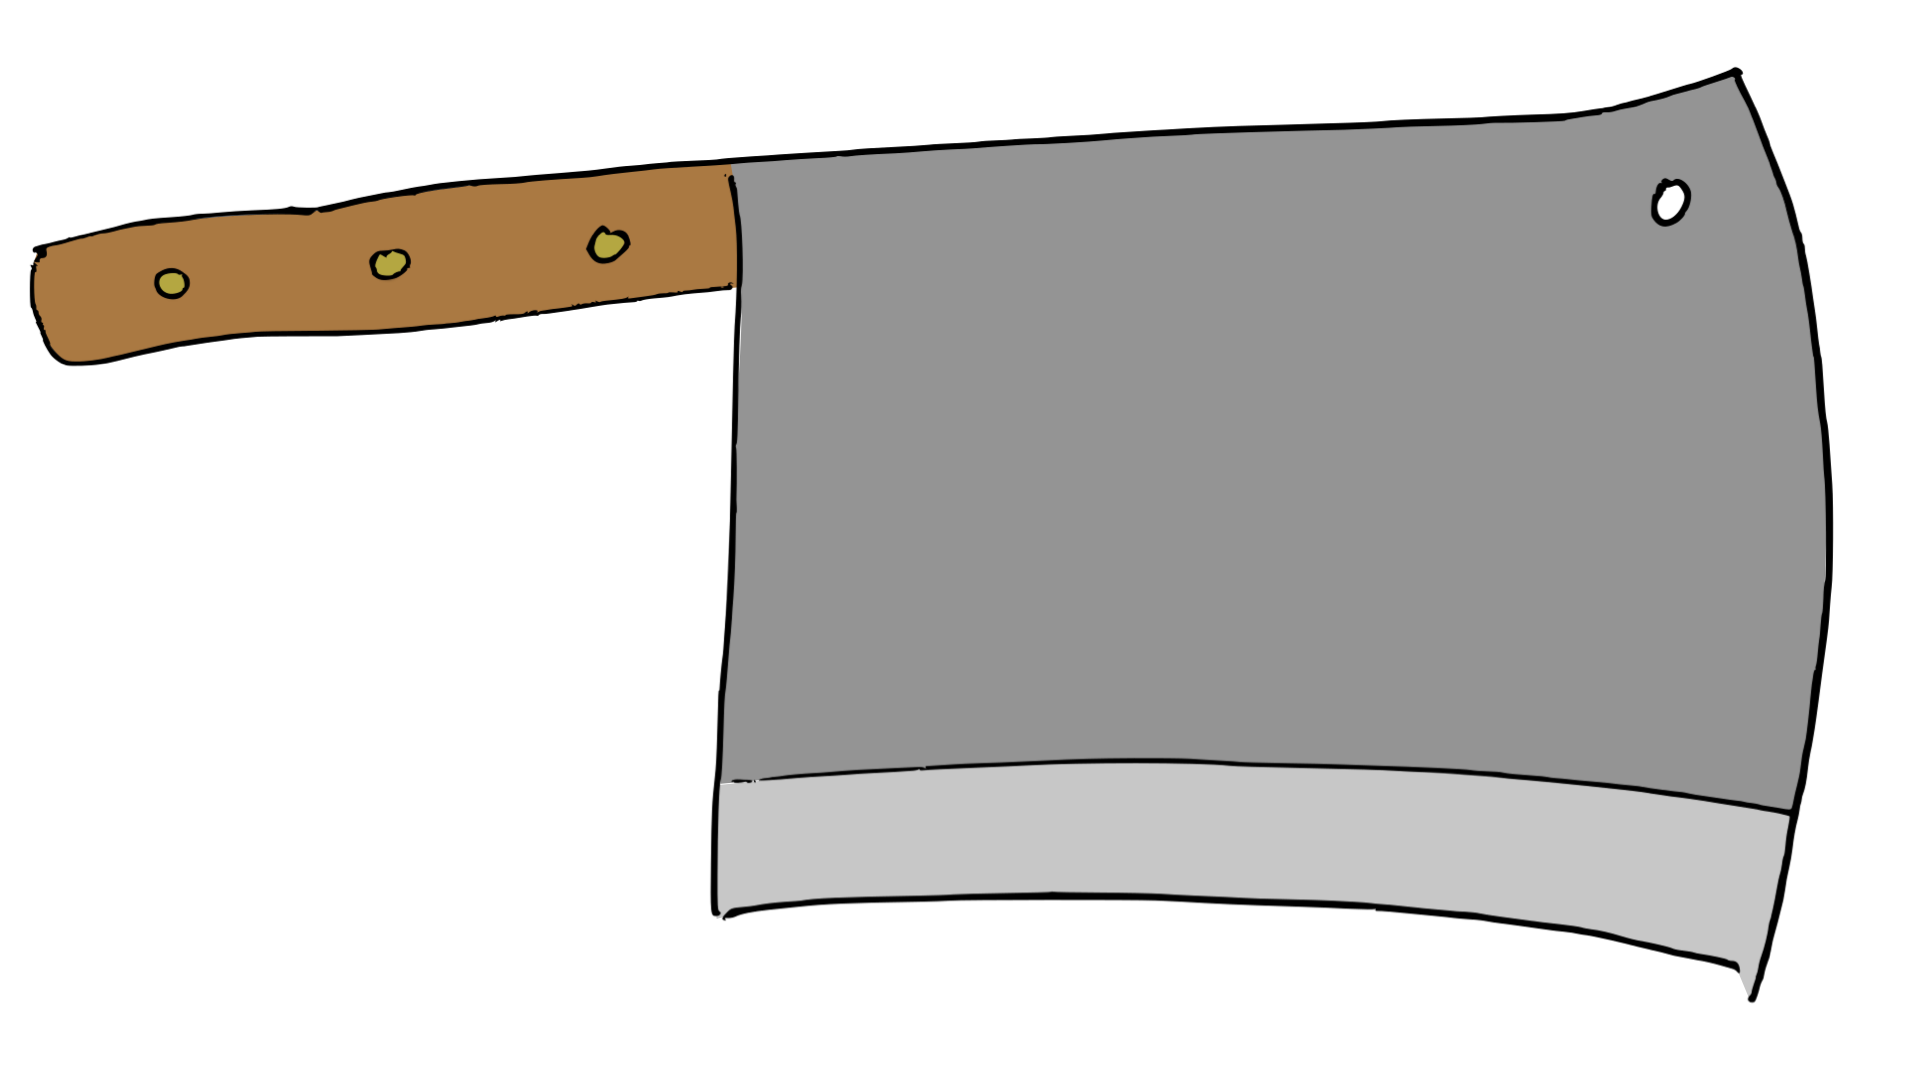 Buthcer's knife